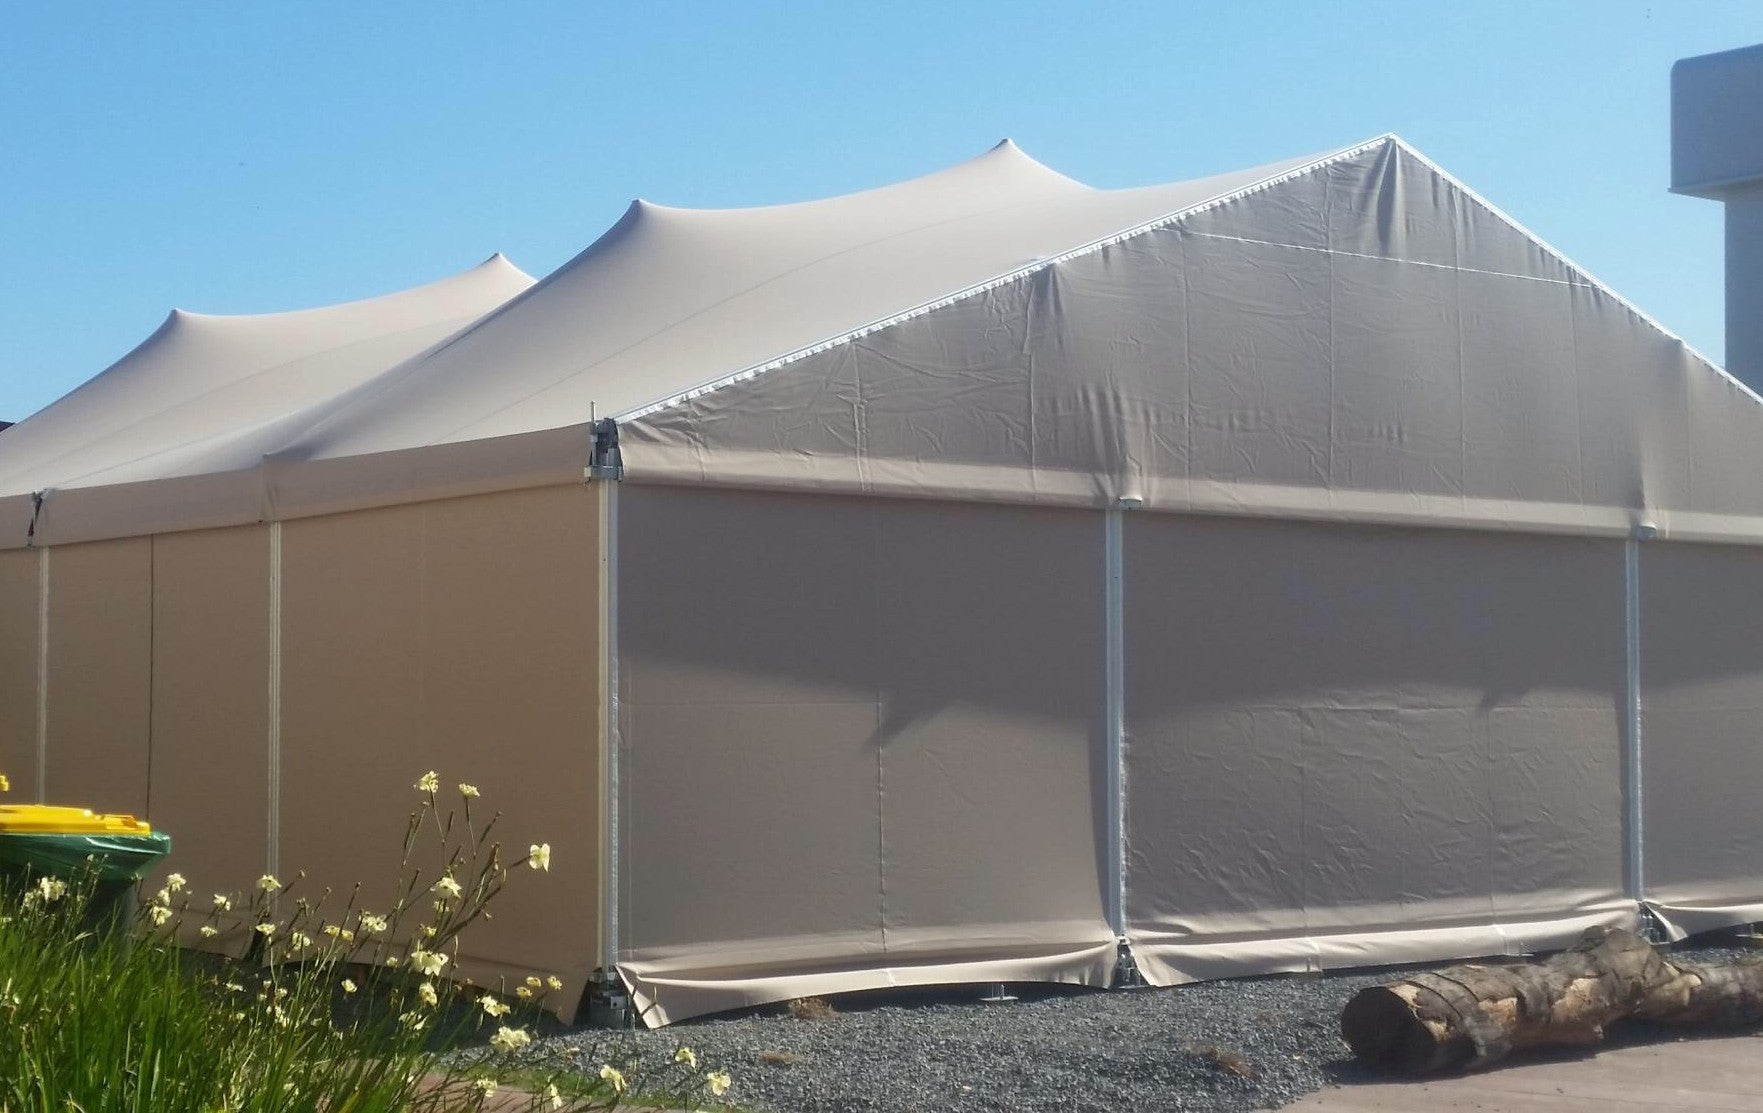 Clearspan Stretch Pavilions - Stretch Event Tents USA ... & MEGA Cube - Stretch Tent Truss Stage | Stretch Event Tents USA